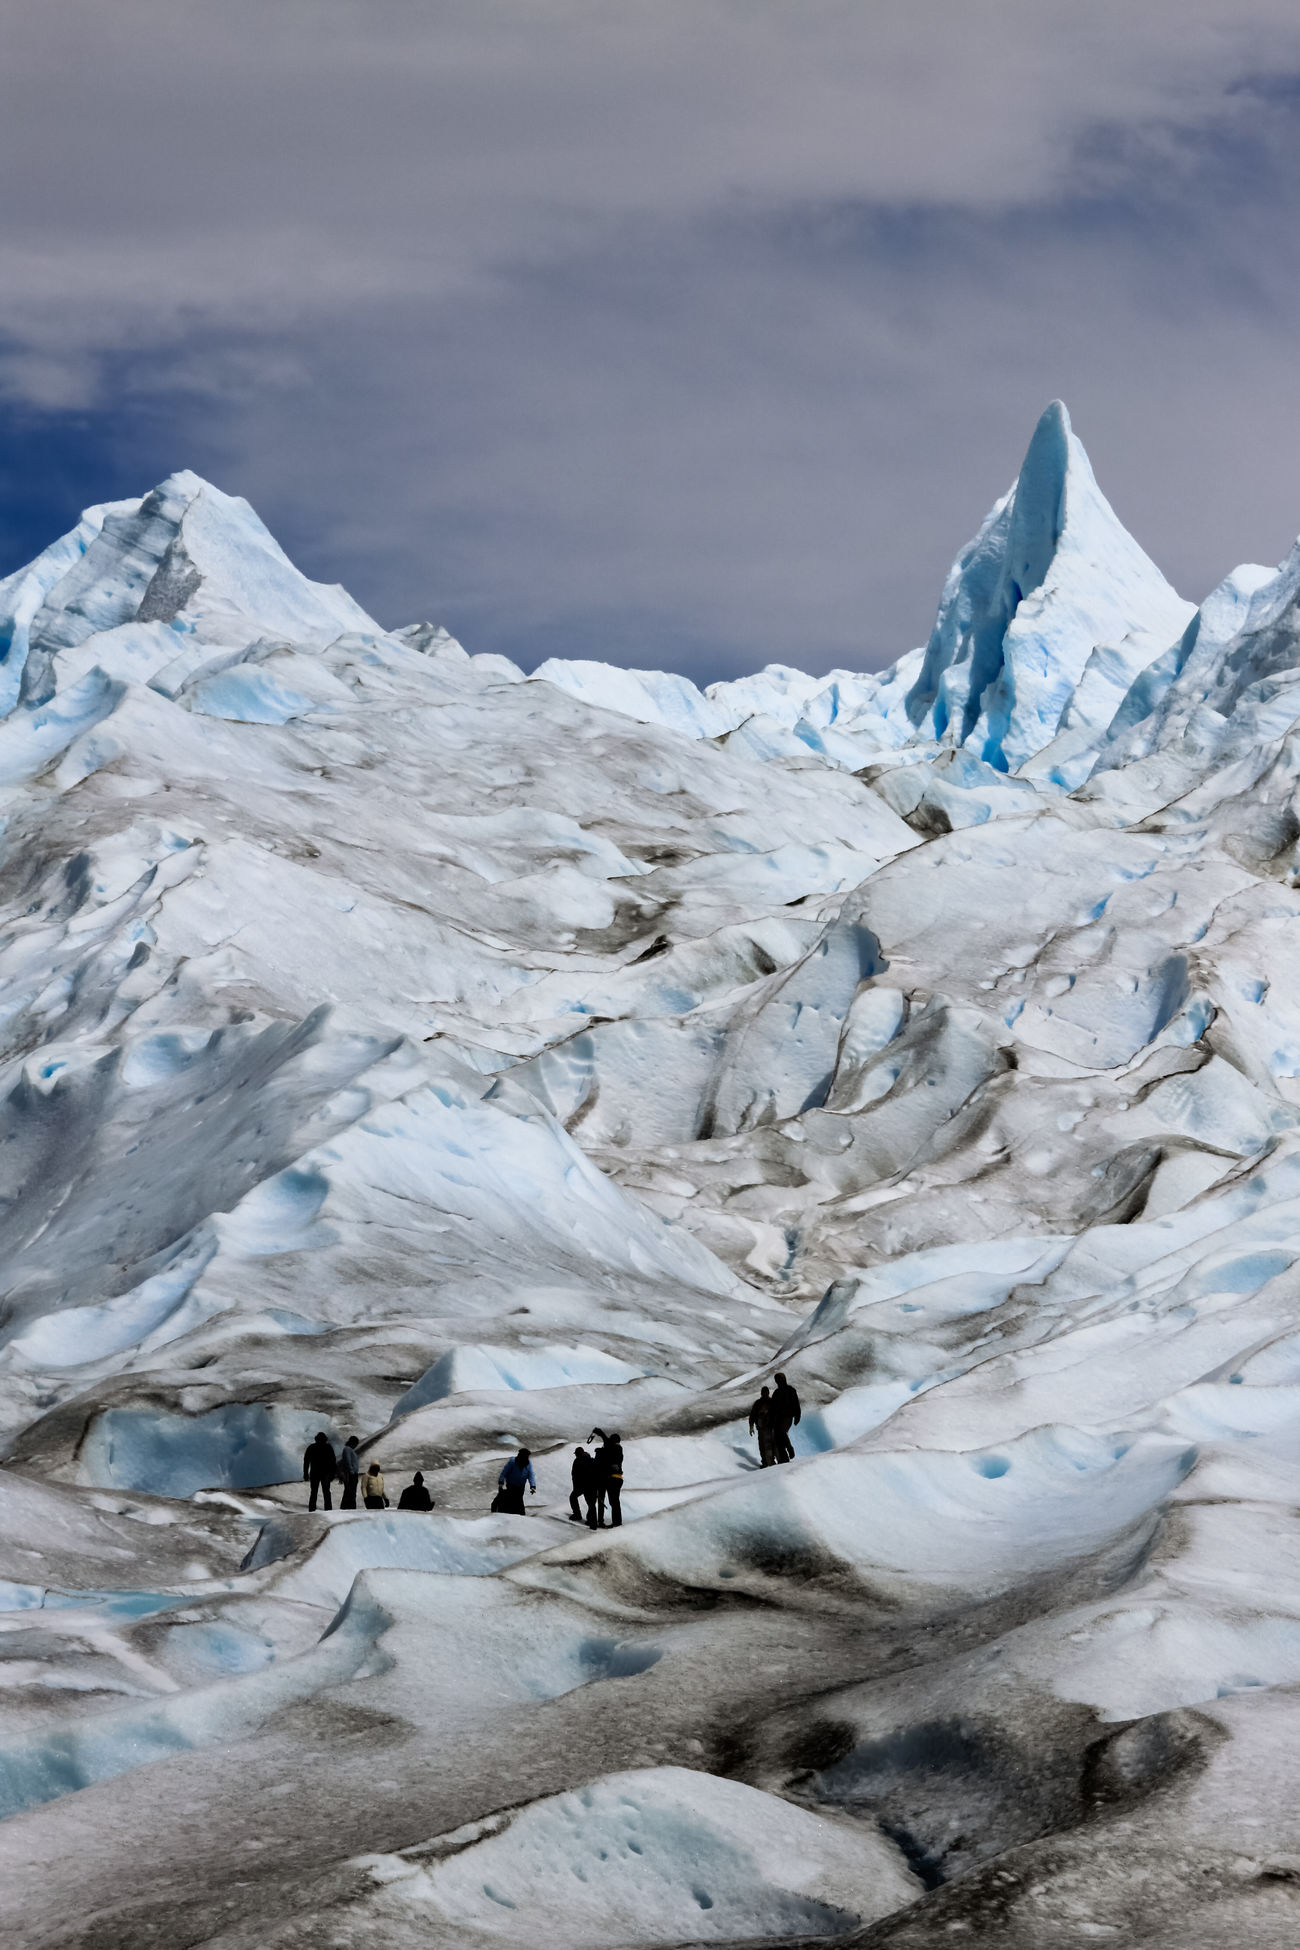 Ice climbing on the Perito Moreno Glacier. The glacier consists of over 250 km2 (97 sq mi) of ice spanning 30 km (19 mi) in length and a width of 5km at its terminus. One of 48 glaciers that form part of the Southern Patagonian Ice Field, the high altitude ice field has a total area of 12,363 km2 (4,773 sq mi) of ice. Los Glaciares National Park, Santa Cruz , Argentinean Patagonia, Argentina. Love Life, Love Photography America Argentina Beauty In Nature Blue Cliff Climbing Cold Temperature People Glacier Ice Landscape Moreno Mountain Nature Outdoors Patagonia Perito Moreno. Patagonia. Argentina. Sky Snow Southern IceField Glaciers Glacier Surreal Fractured